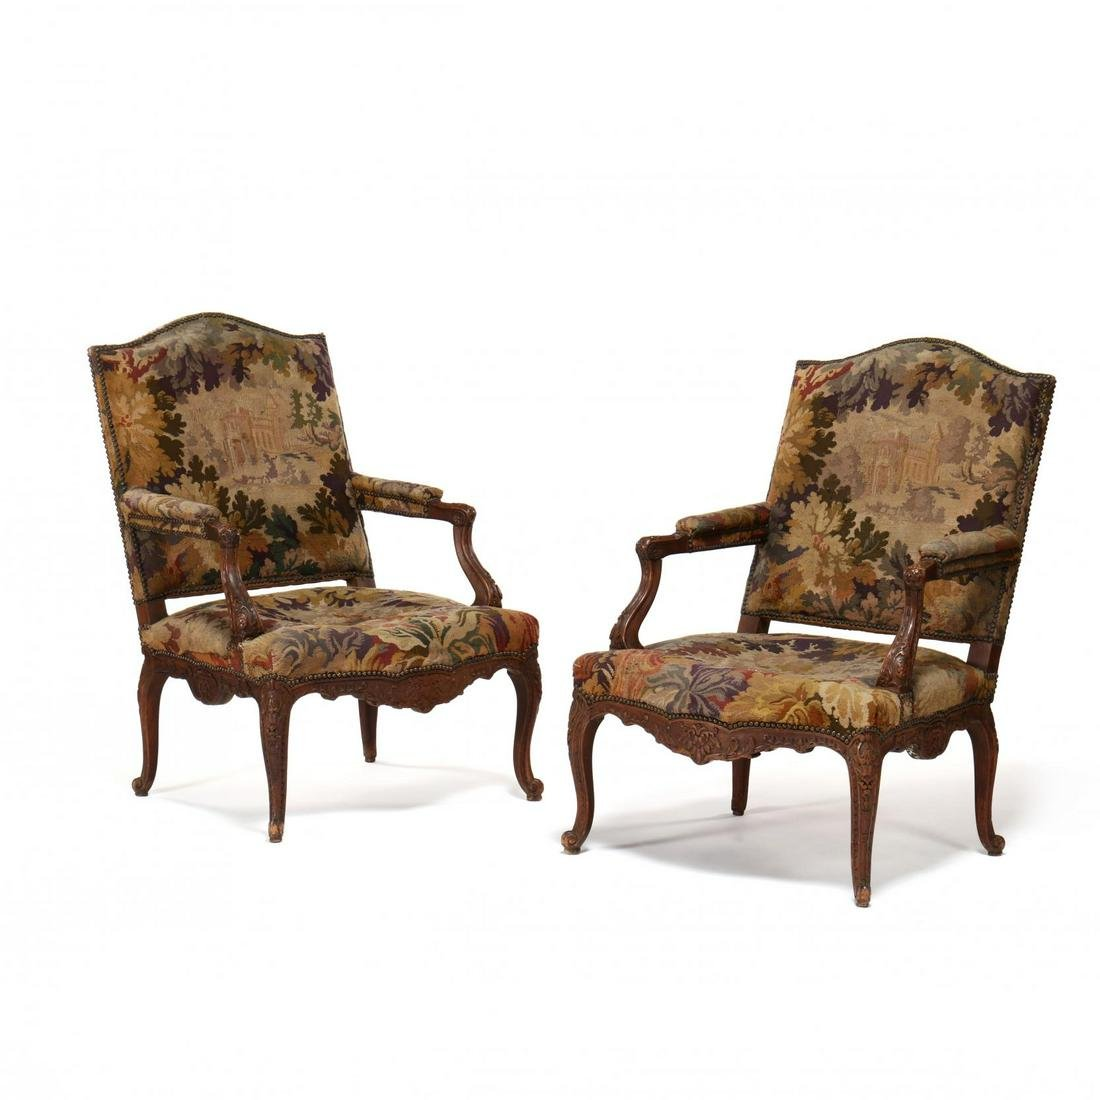 Pair of Antique Louis XV Style Carved Fauteuil